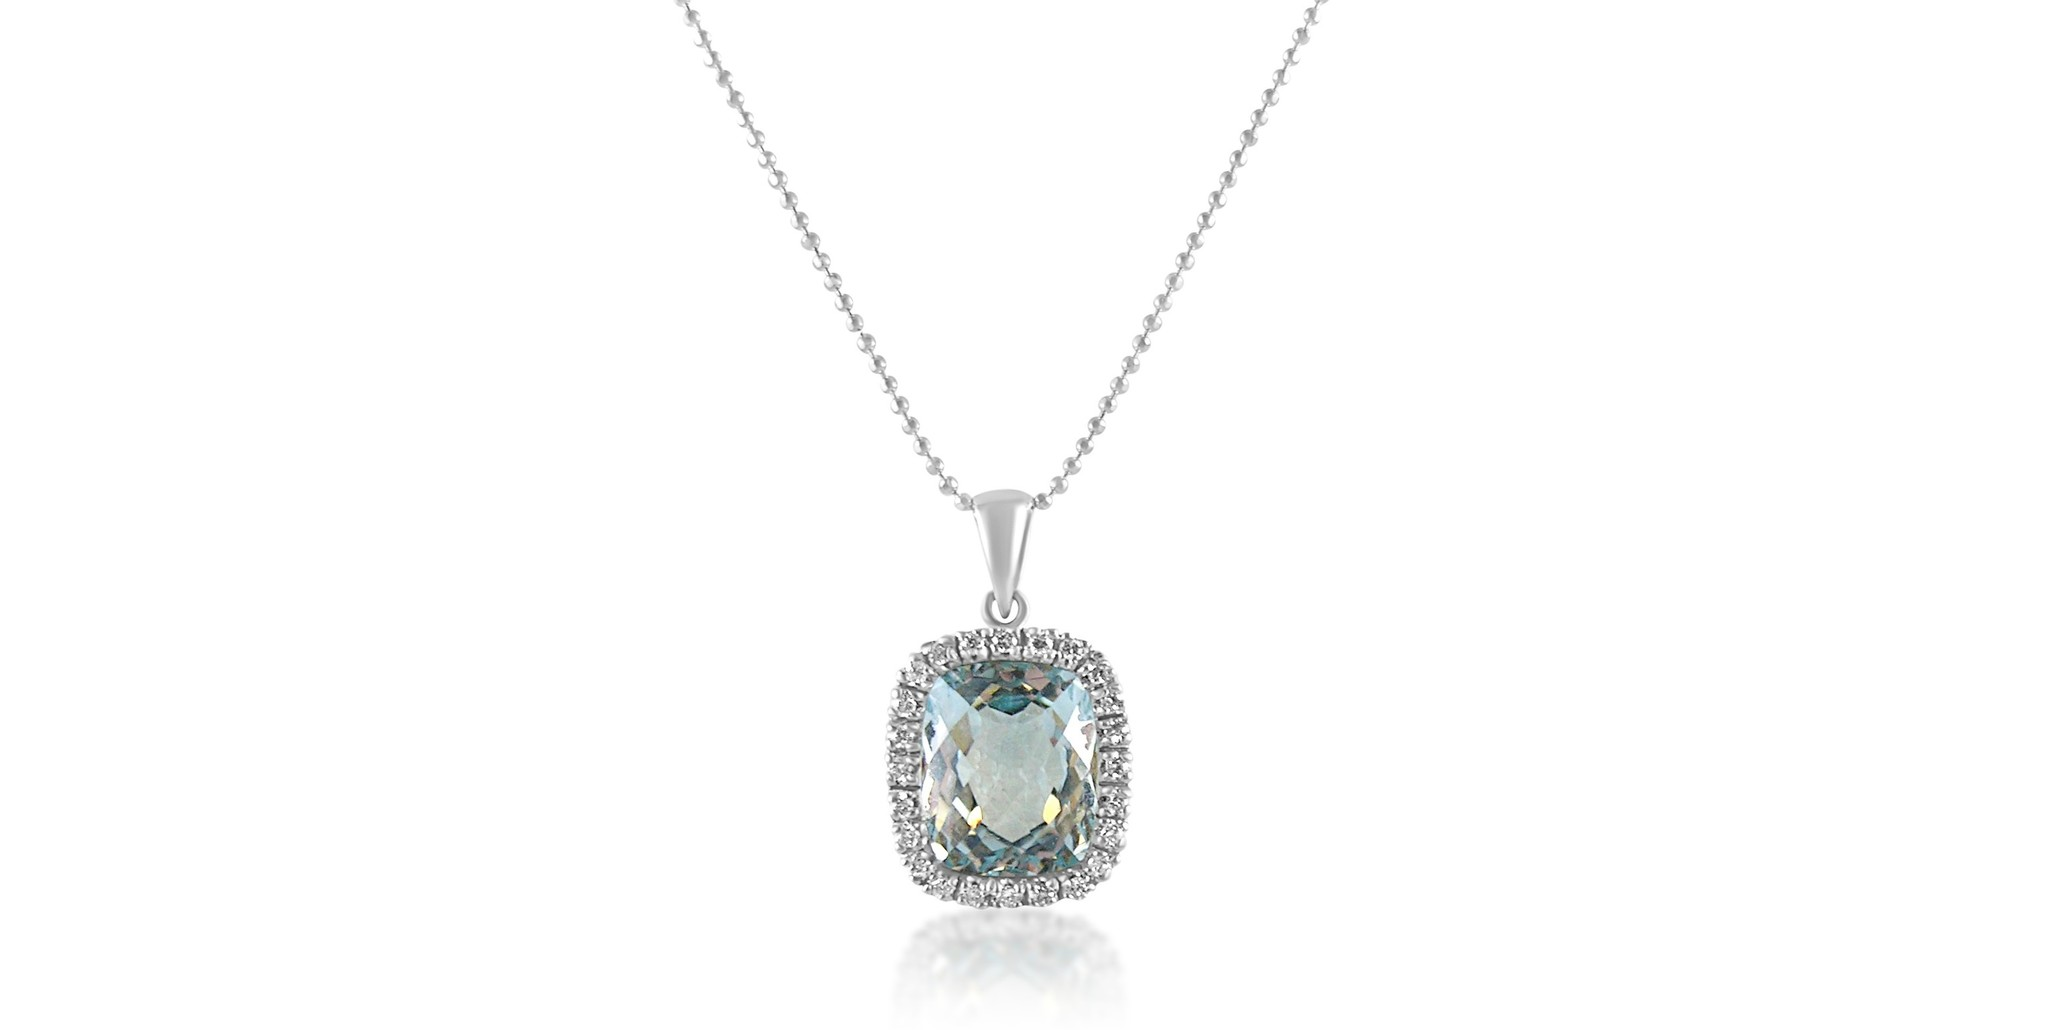 3813bc2902a 18 karat white gold pendant with 0.30 ct diamonds and 1.02 ct blue topaz